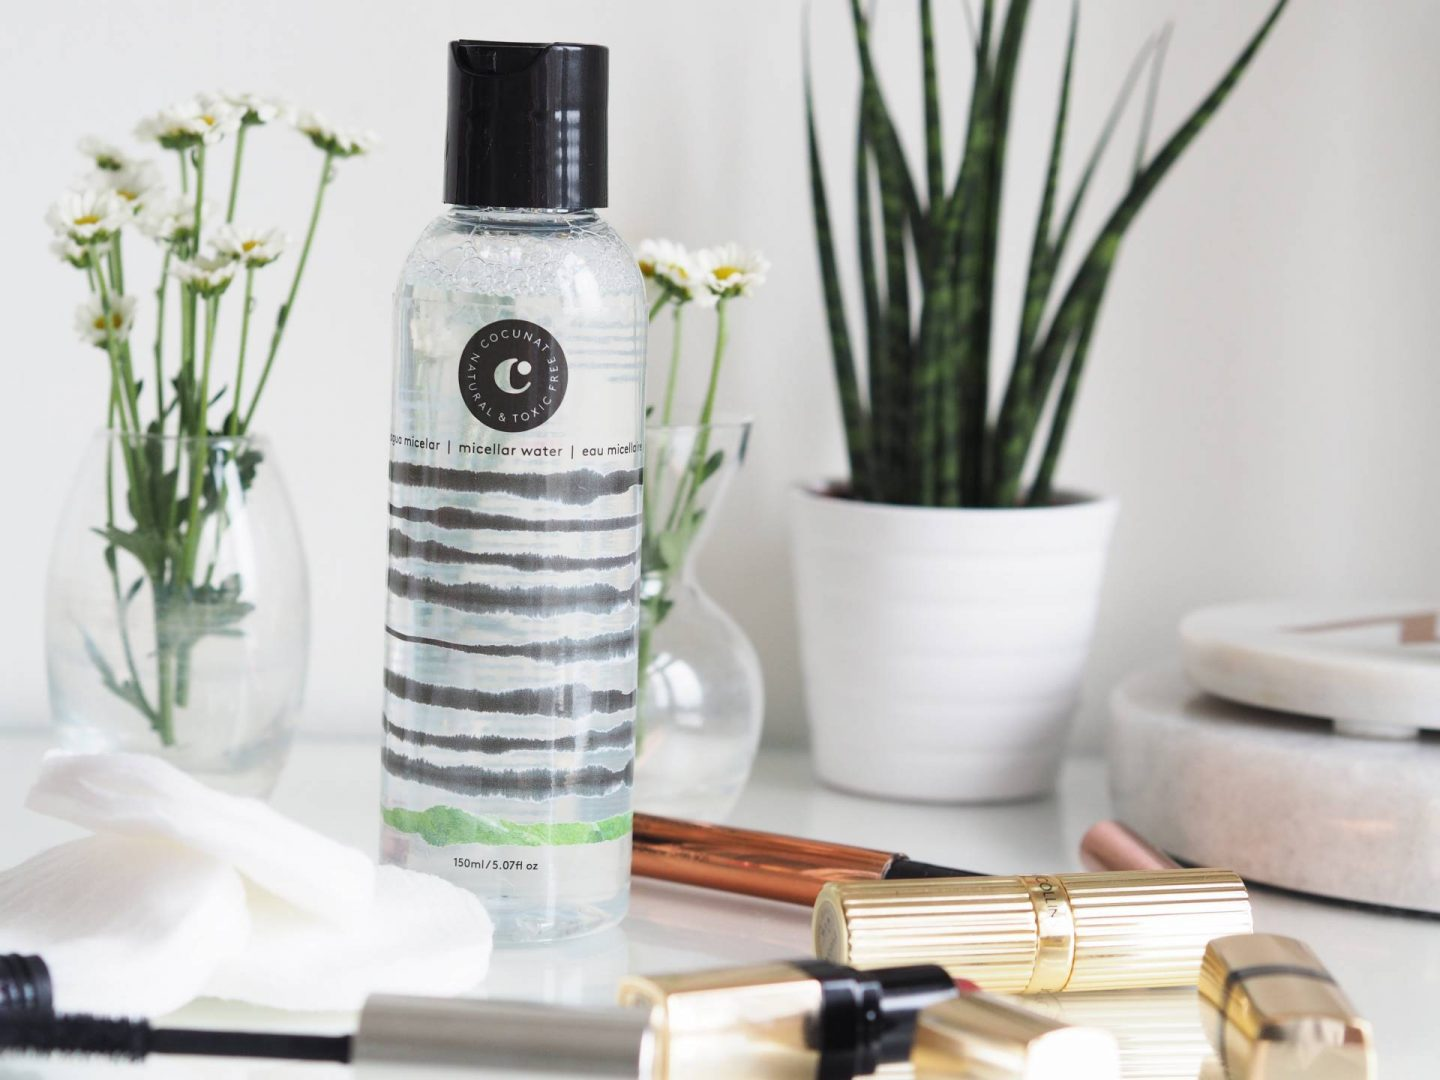 WHAT IS MICELLAR WATER AND DO WE NEED IT